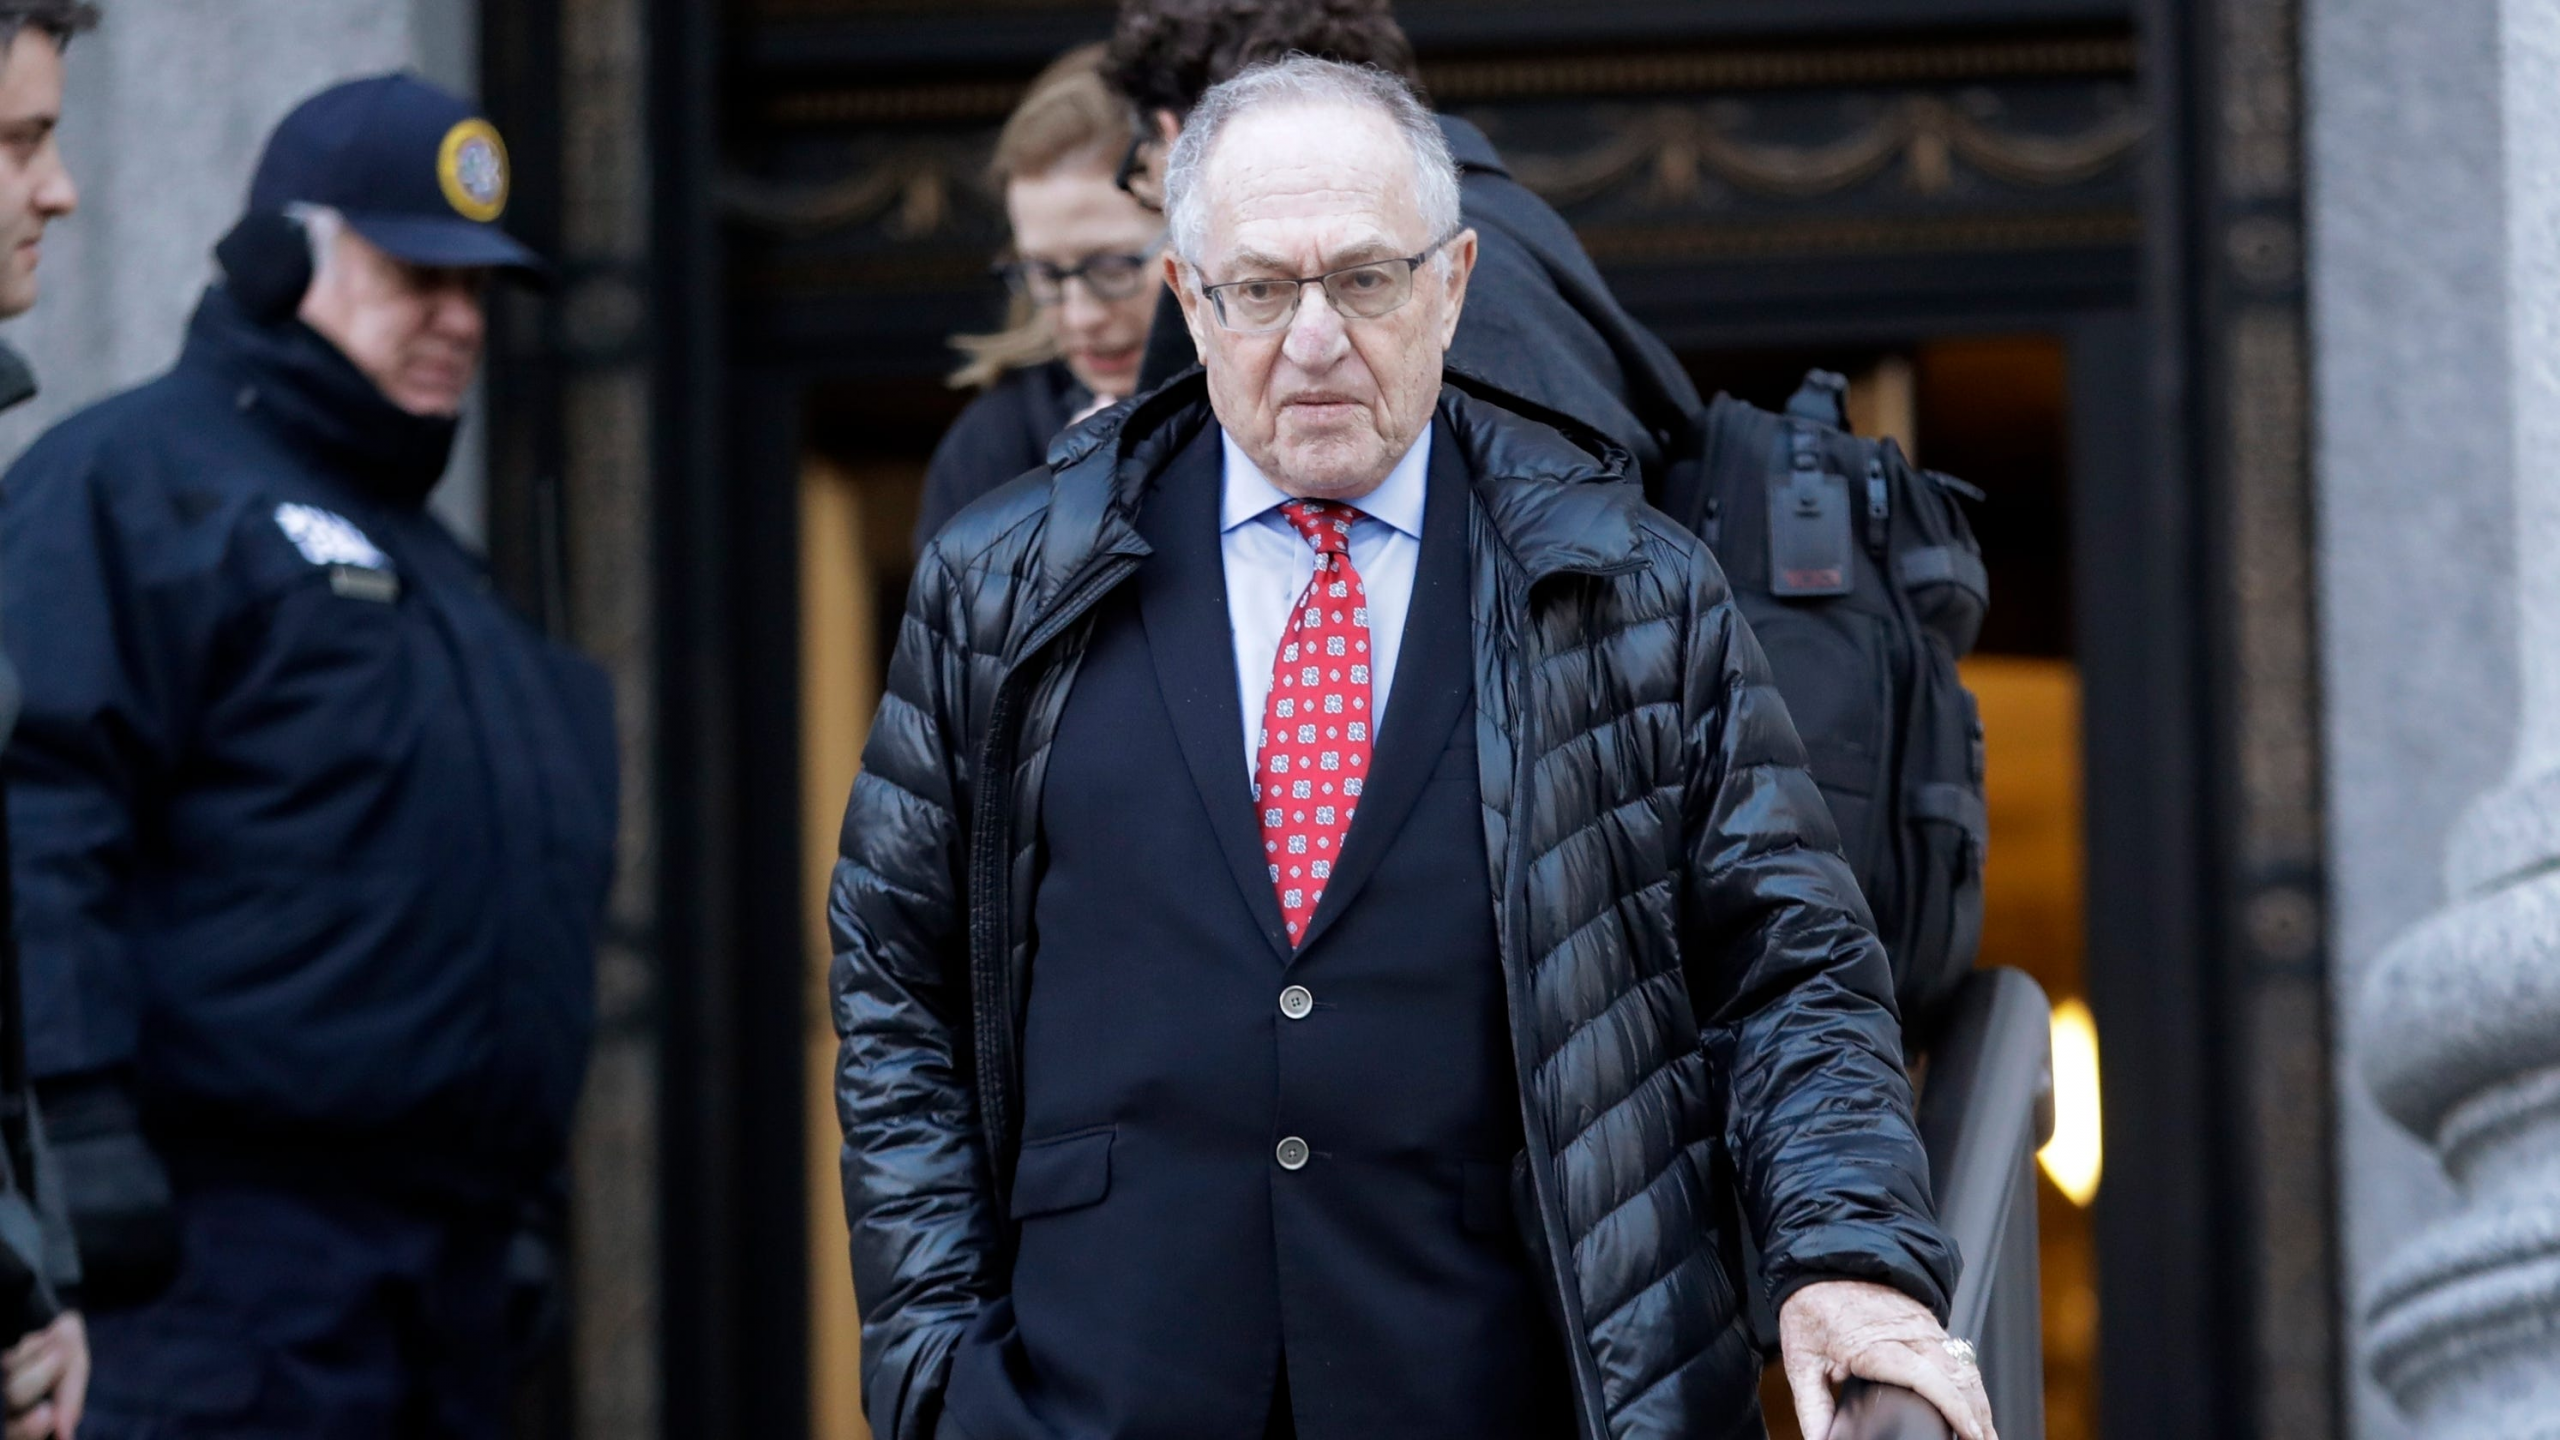 Alan Dershowitz talks ties to Jeffrey Epstein after clashing with Whoopi Goldberg on The View